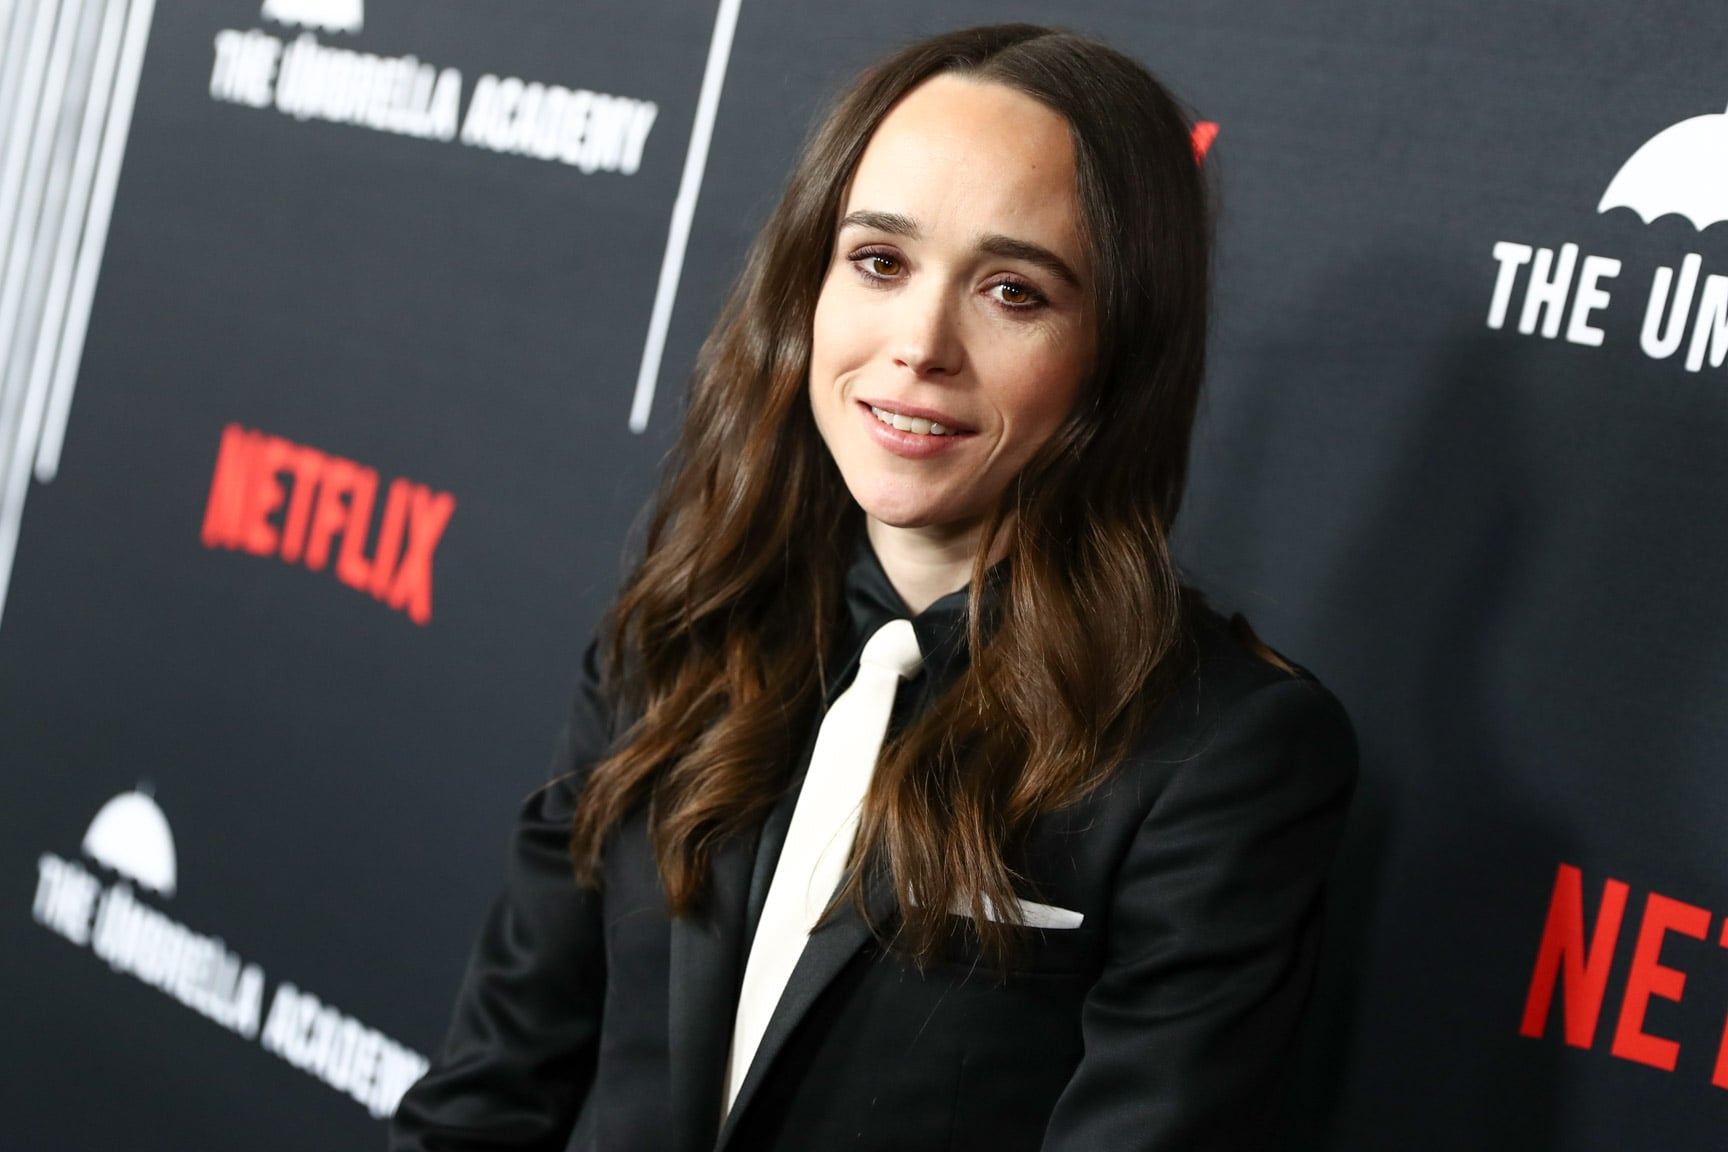 HOLLYWOOD, CALIFORNIA - FEBRUARY 12: Ellen Page attends the premiere of Netflix's